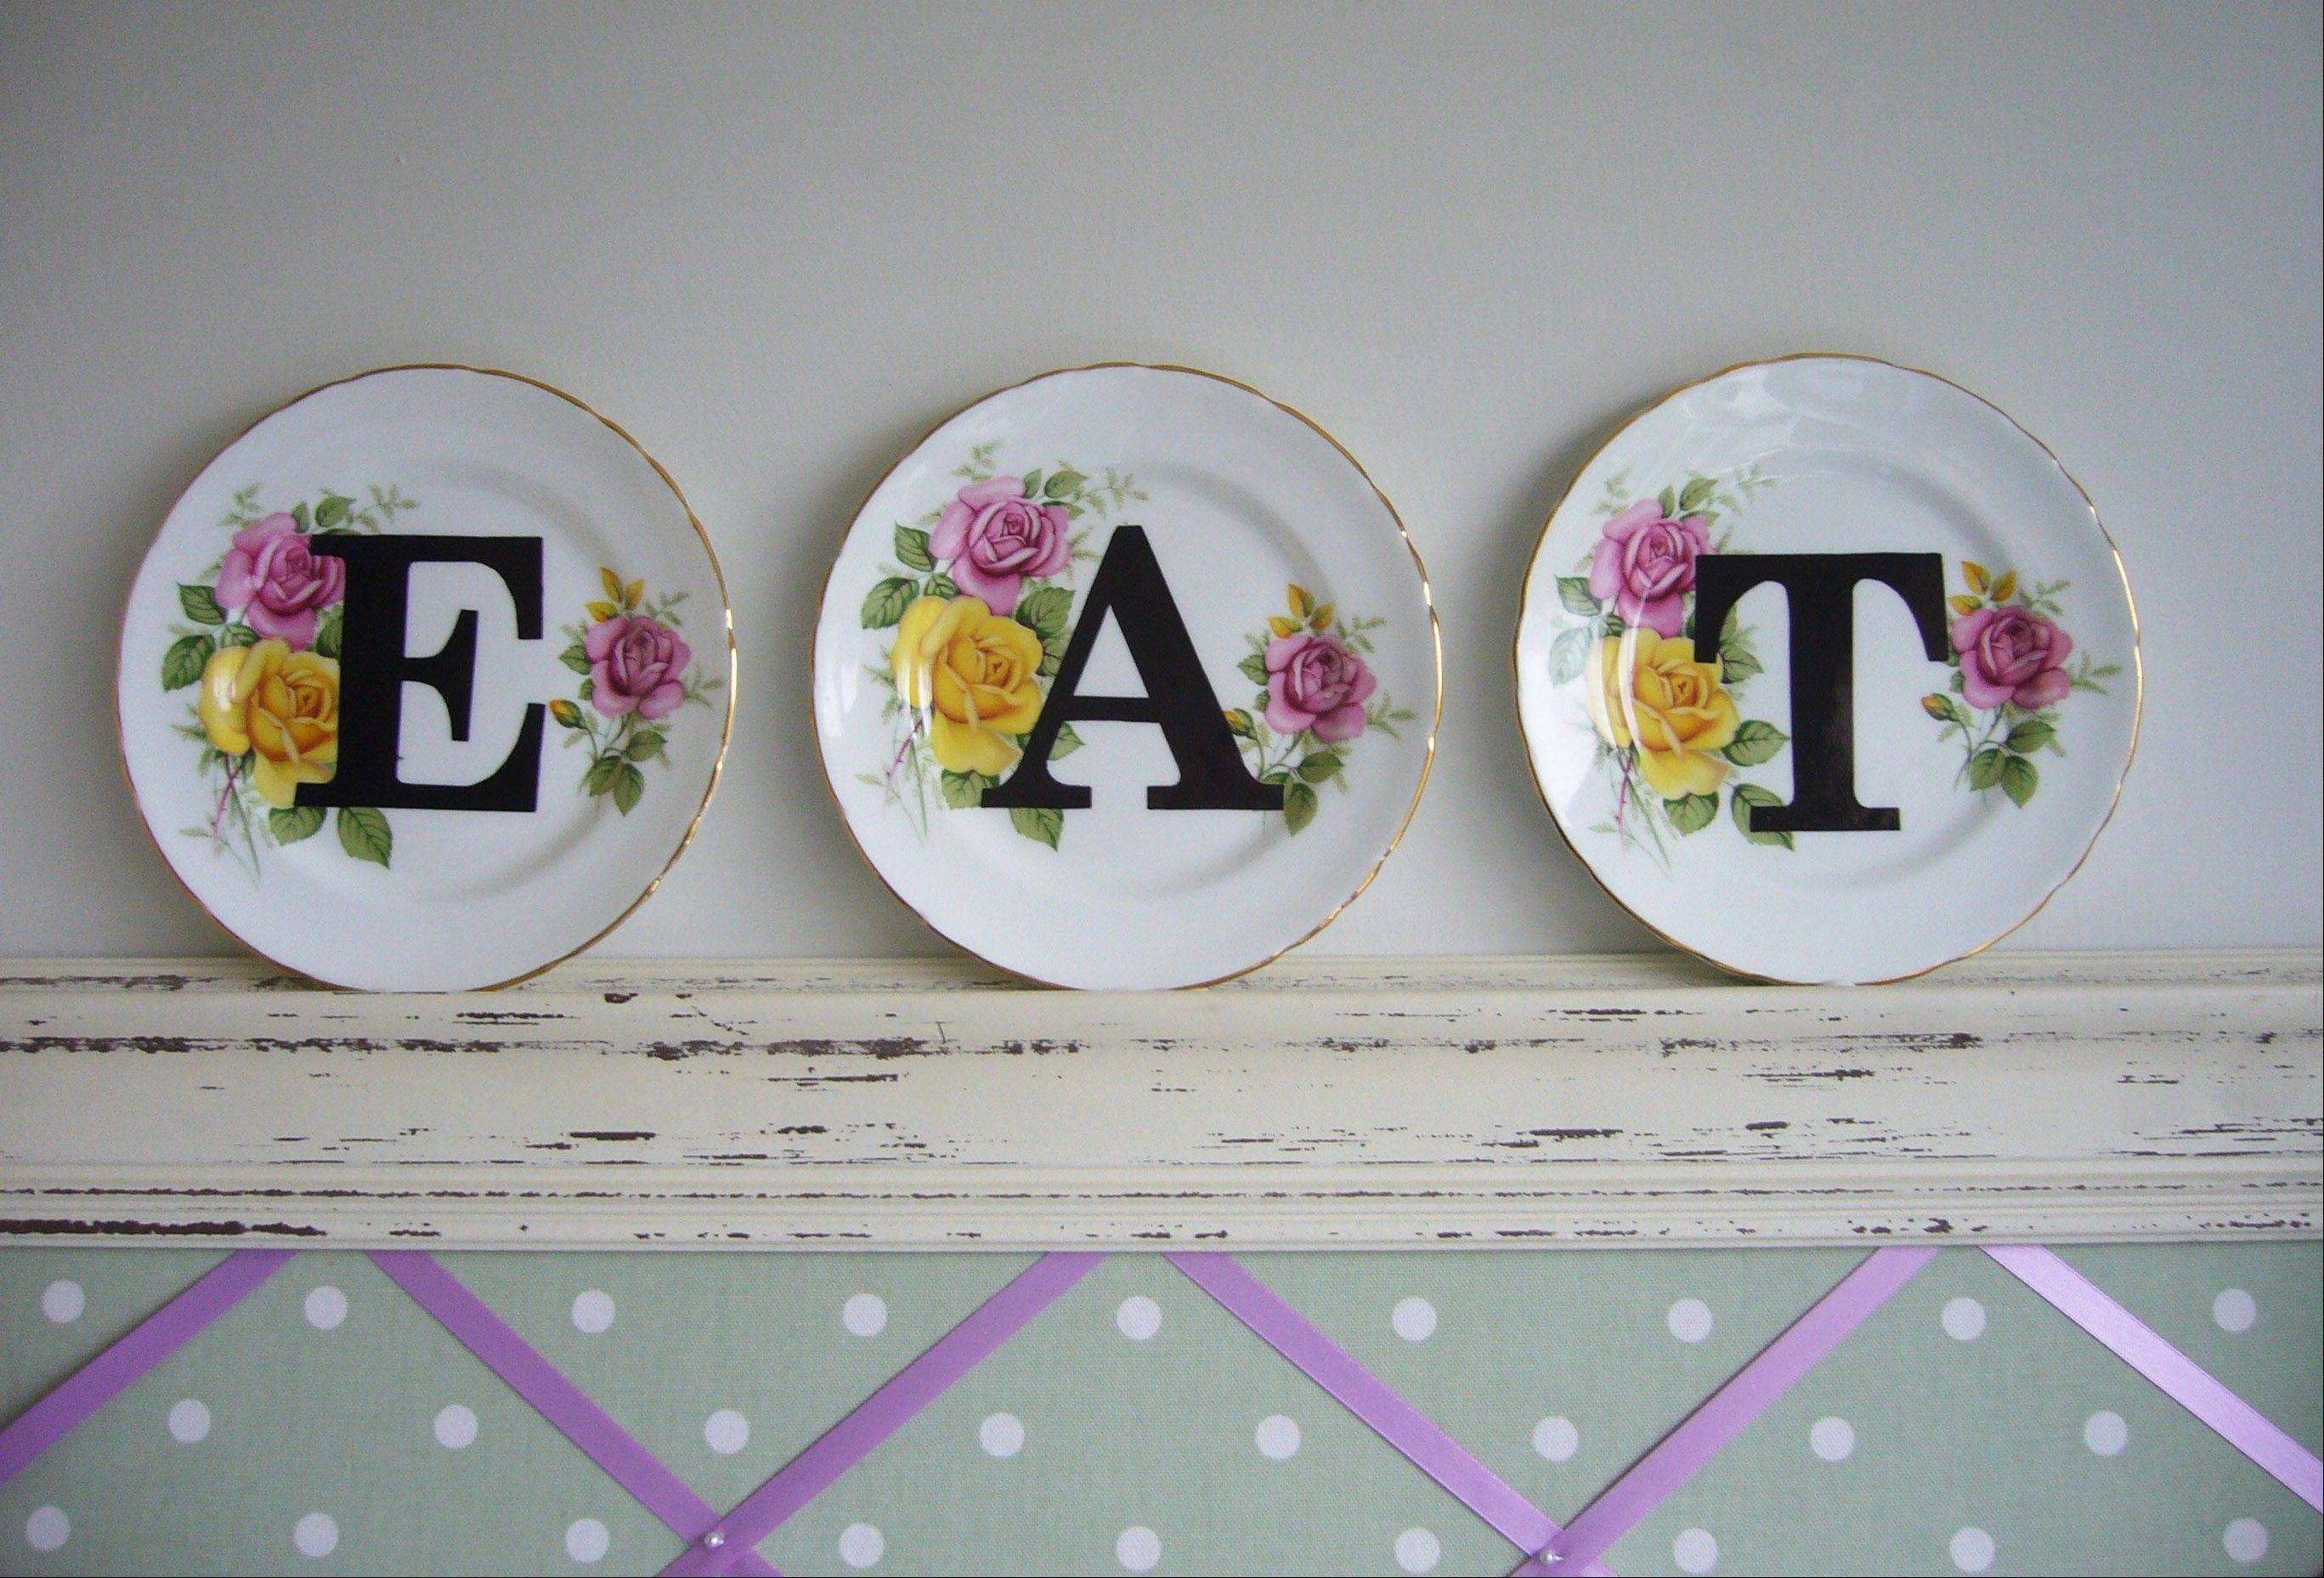 The vintage-plate-decorating project upcycled with modern letter print described on the lifestyle blog �angel in the north� is shown in its completed form. The blog is run by Anna Nicholson of West Yorkshire, England.